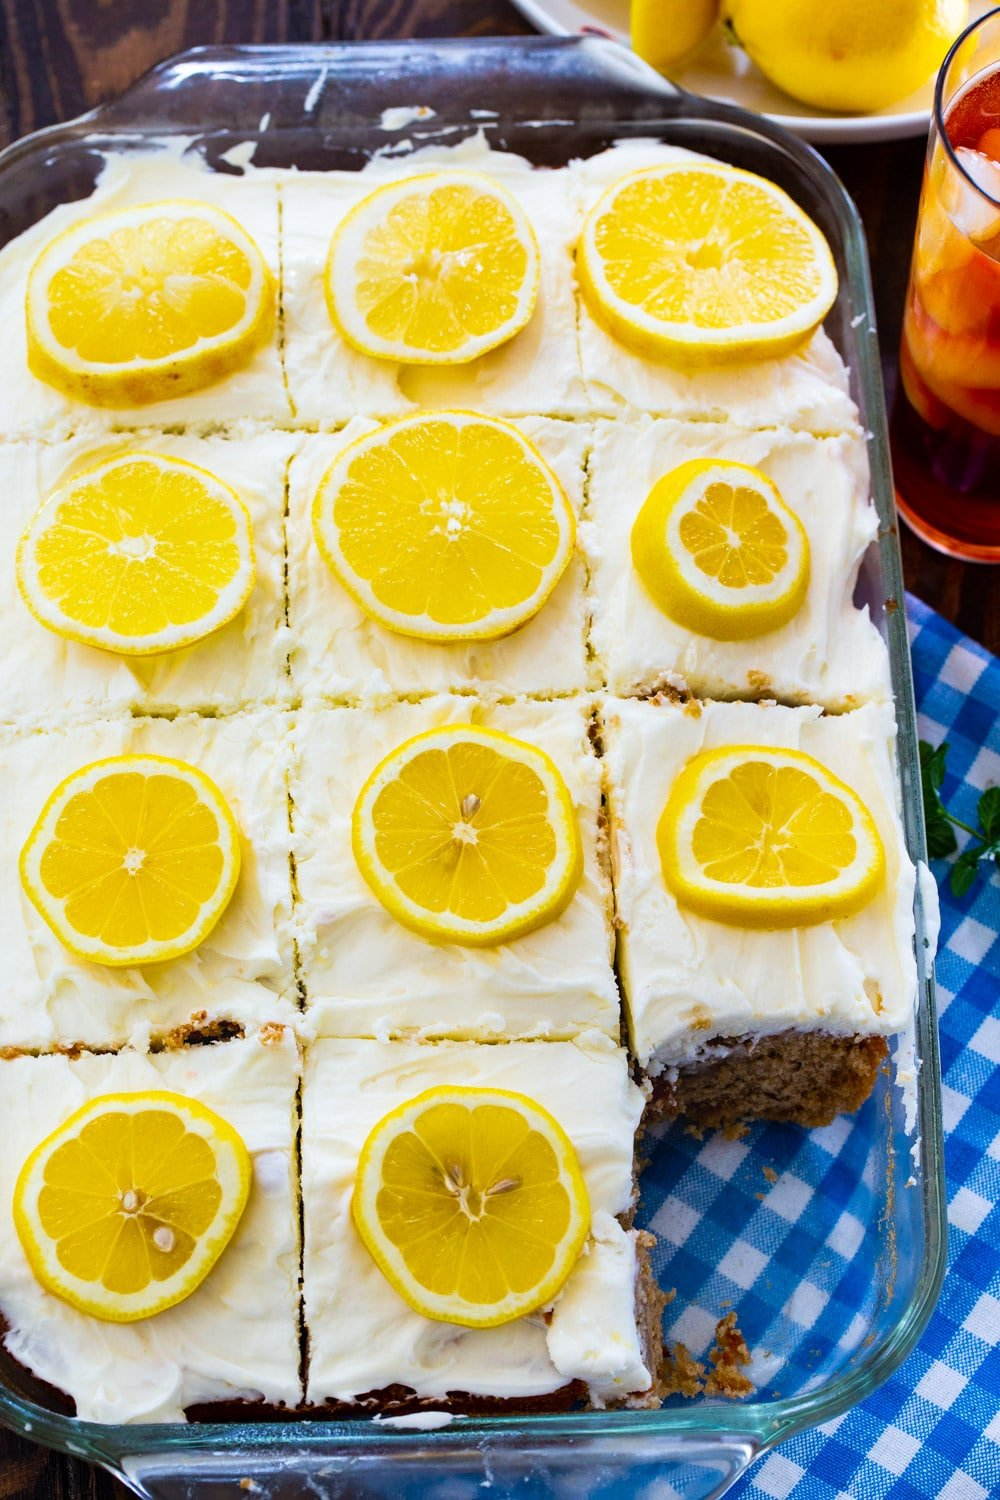 Cake topped with lemon slices in a 9x13-inch pan.